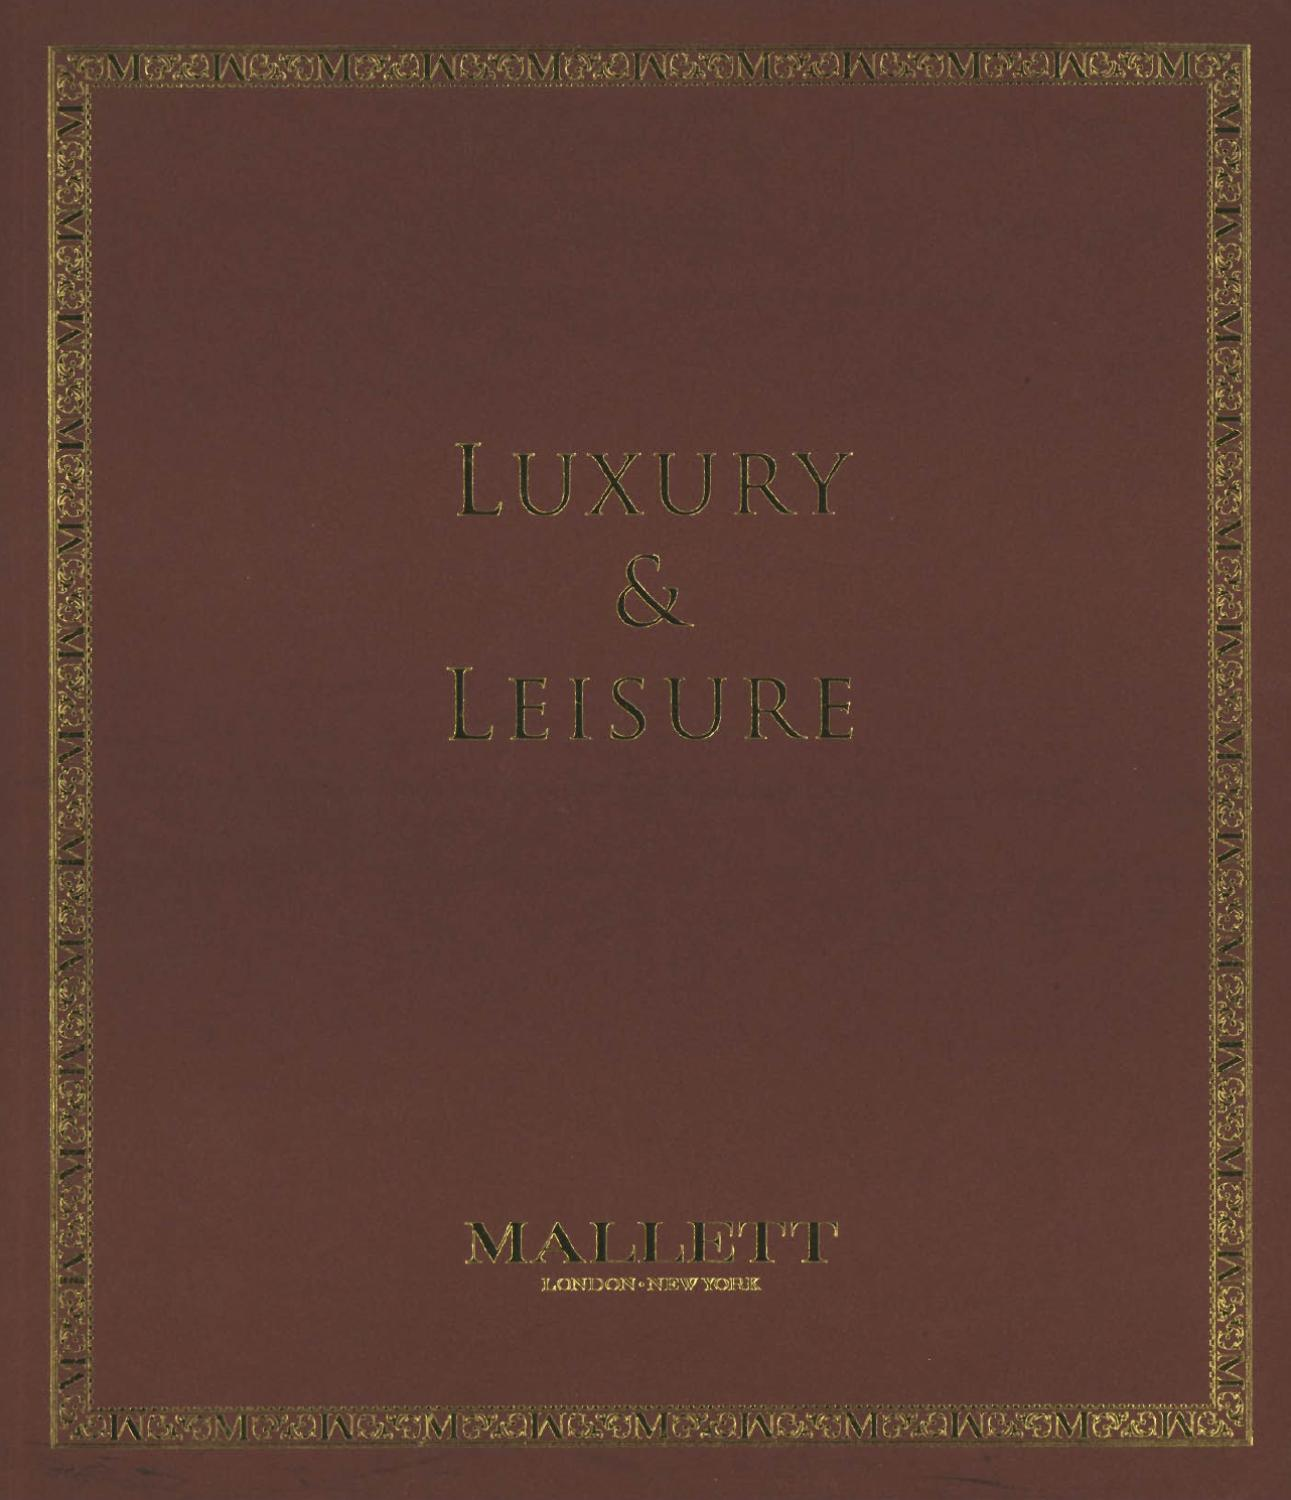 Mallett Antiques - Luxury and Leisure by Mallett - issuu